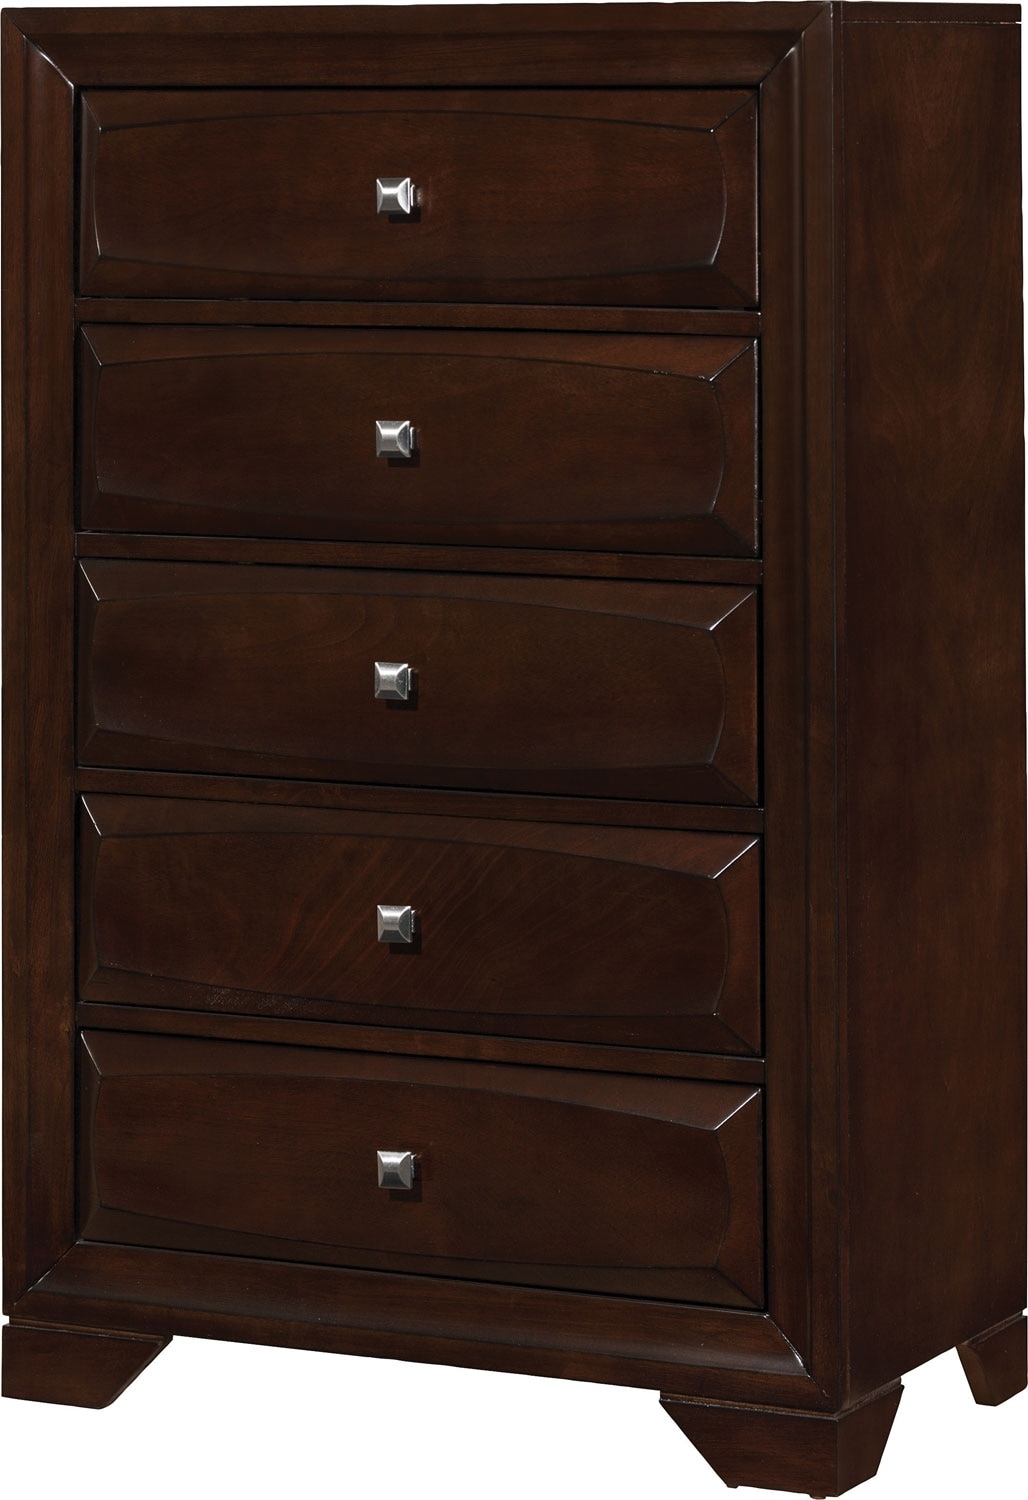 Bedroom Furniture - Jaxon Chest